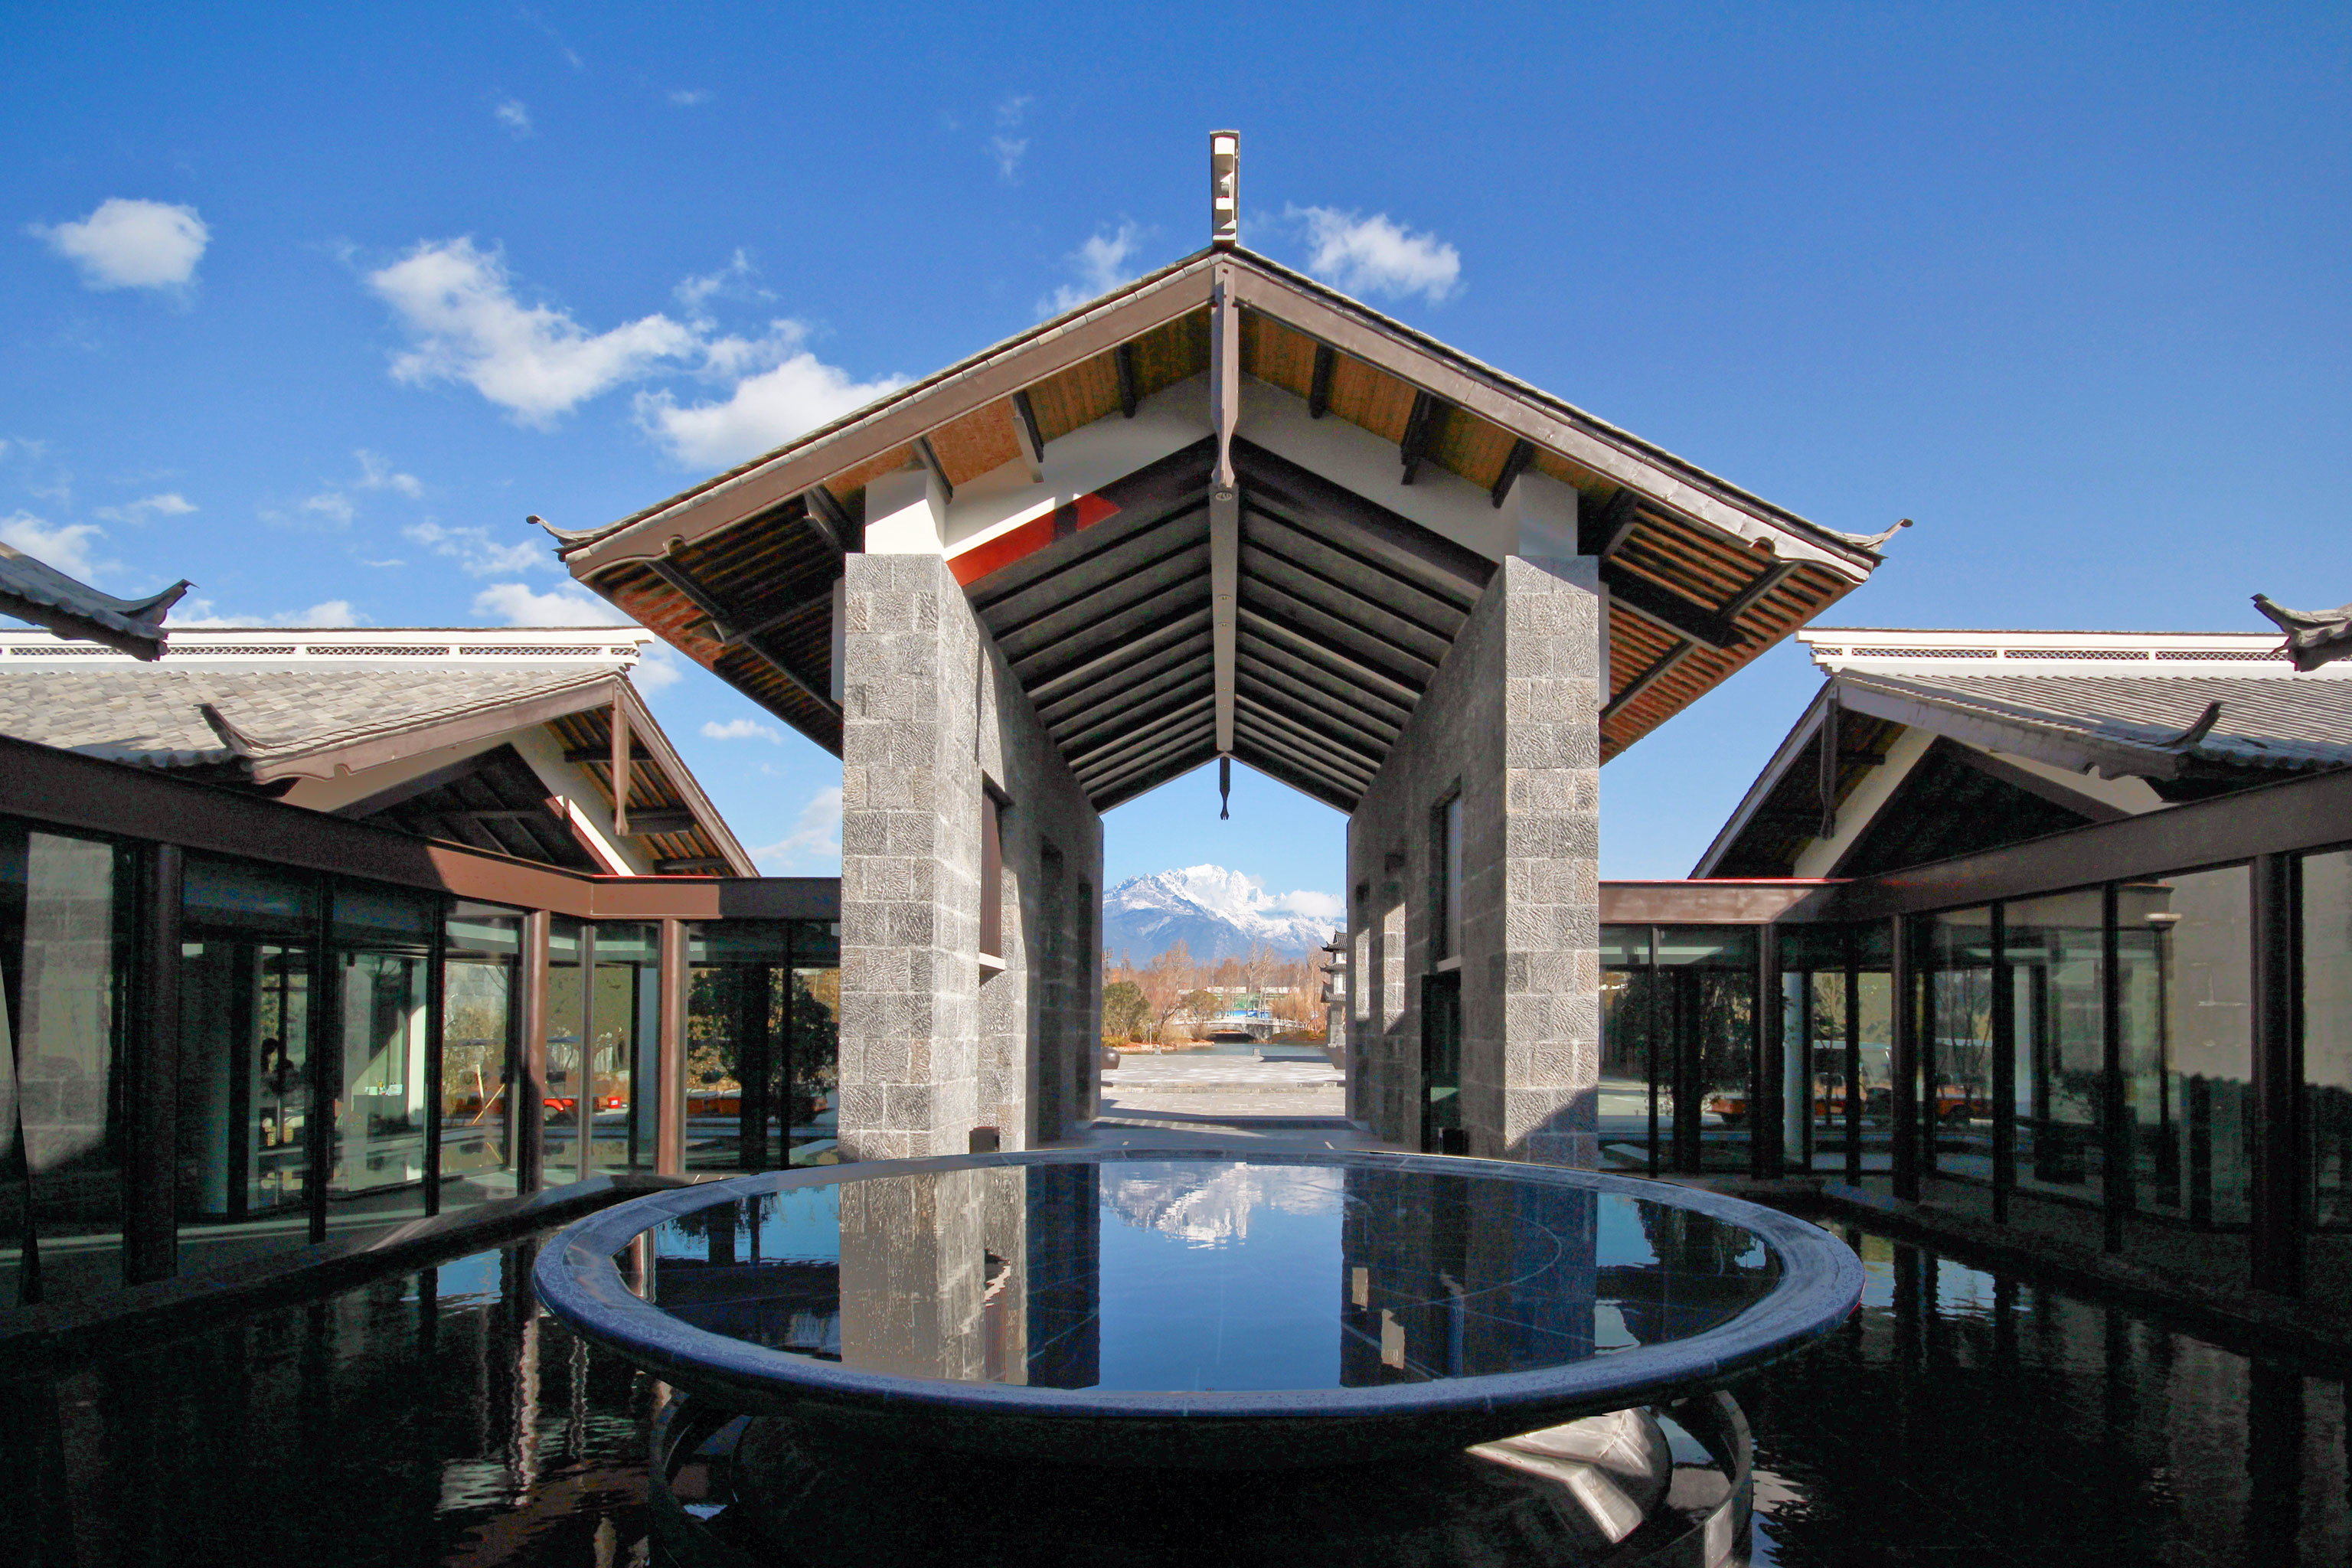 Architecture Buildings Mountains Resort Scenic views sky building property house home outdoor structure mansion old roof